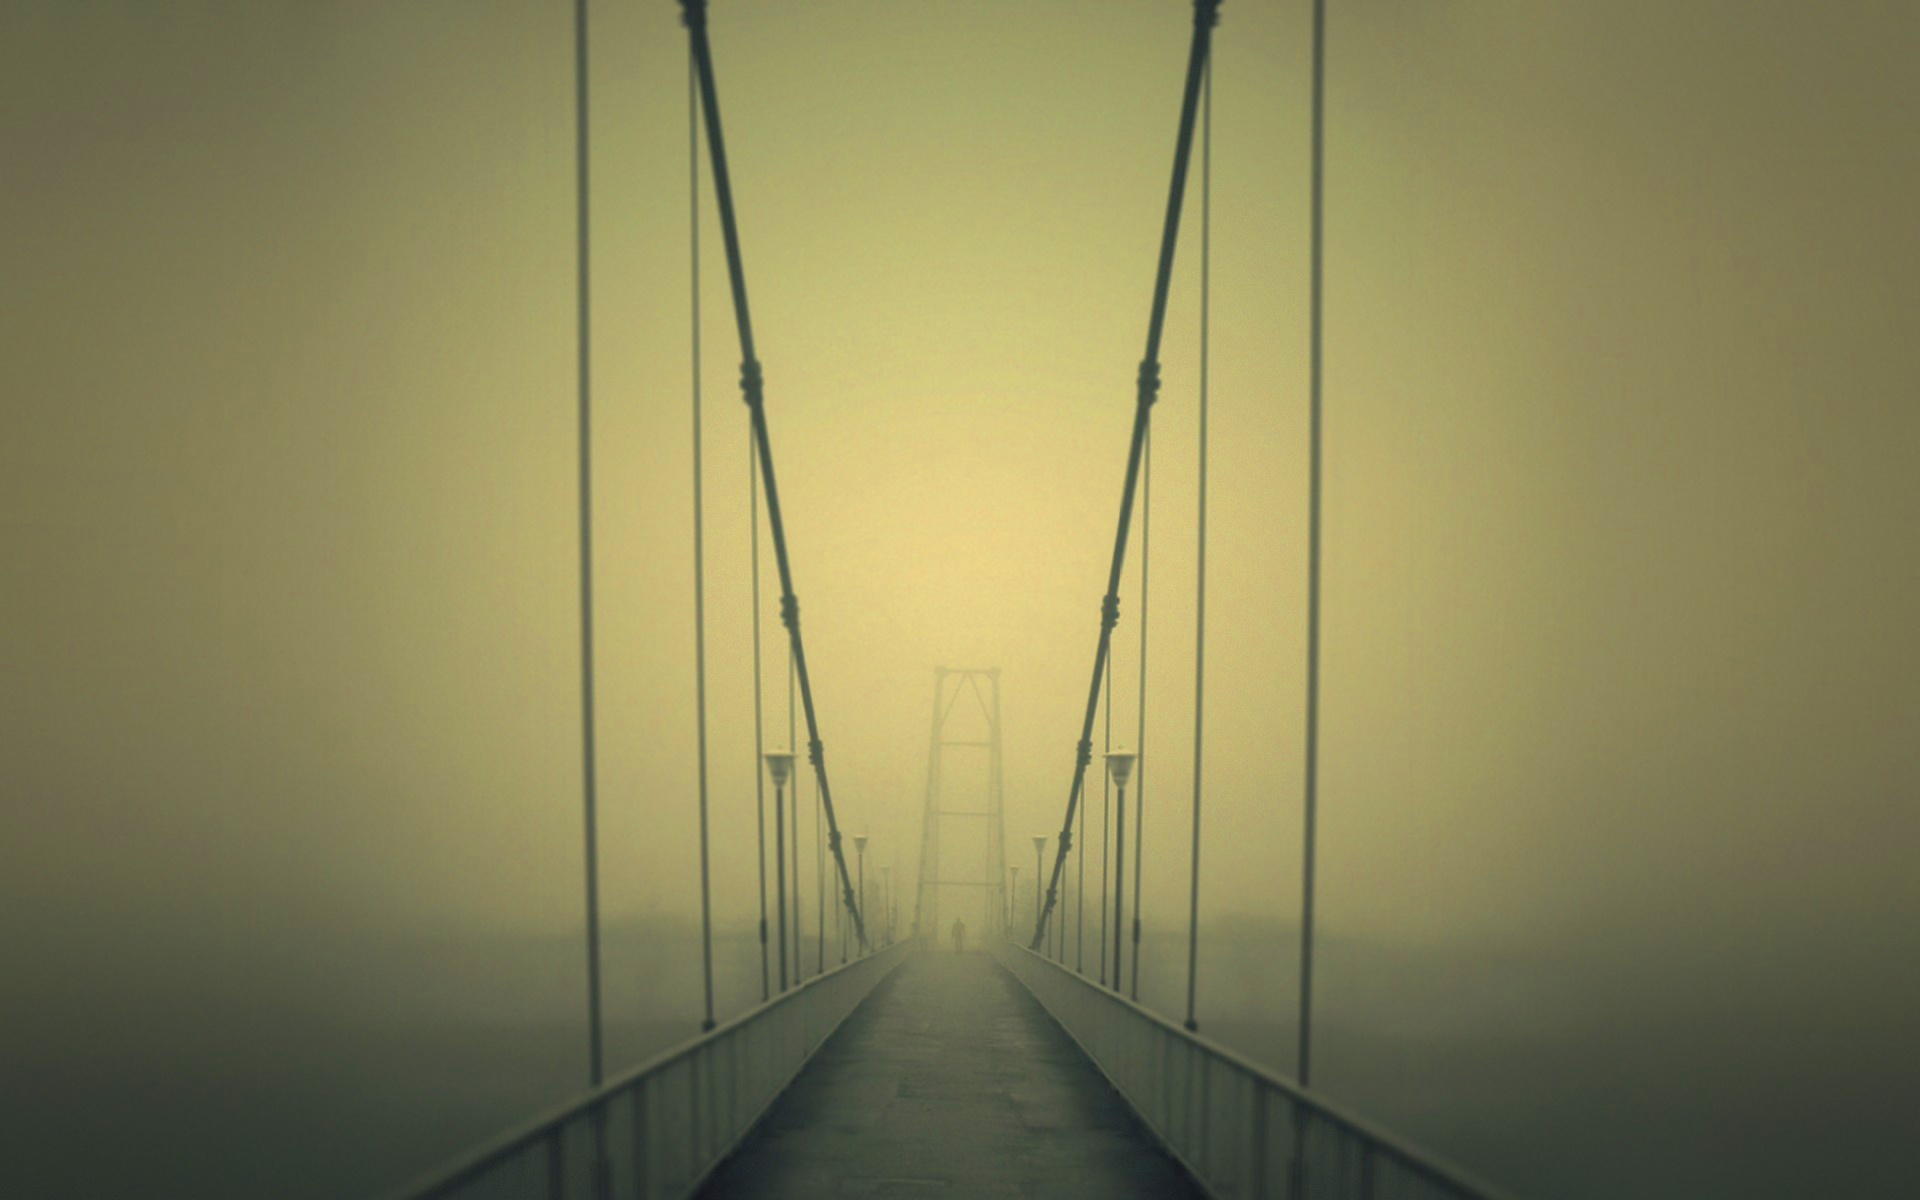 Fog bridge slender man